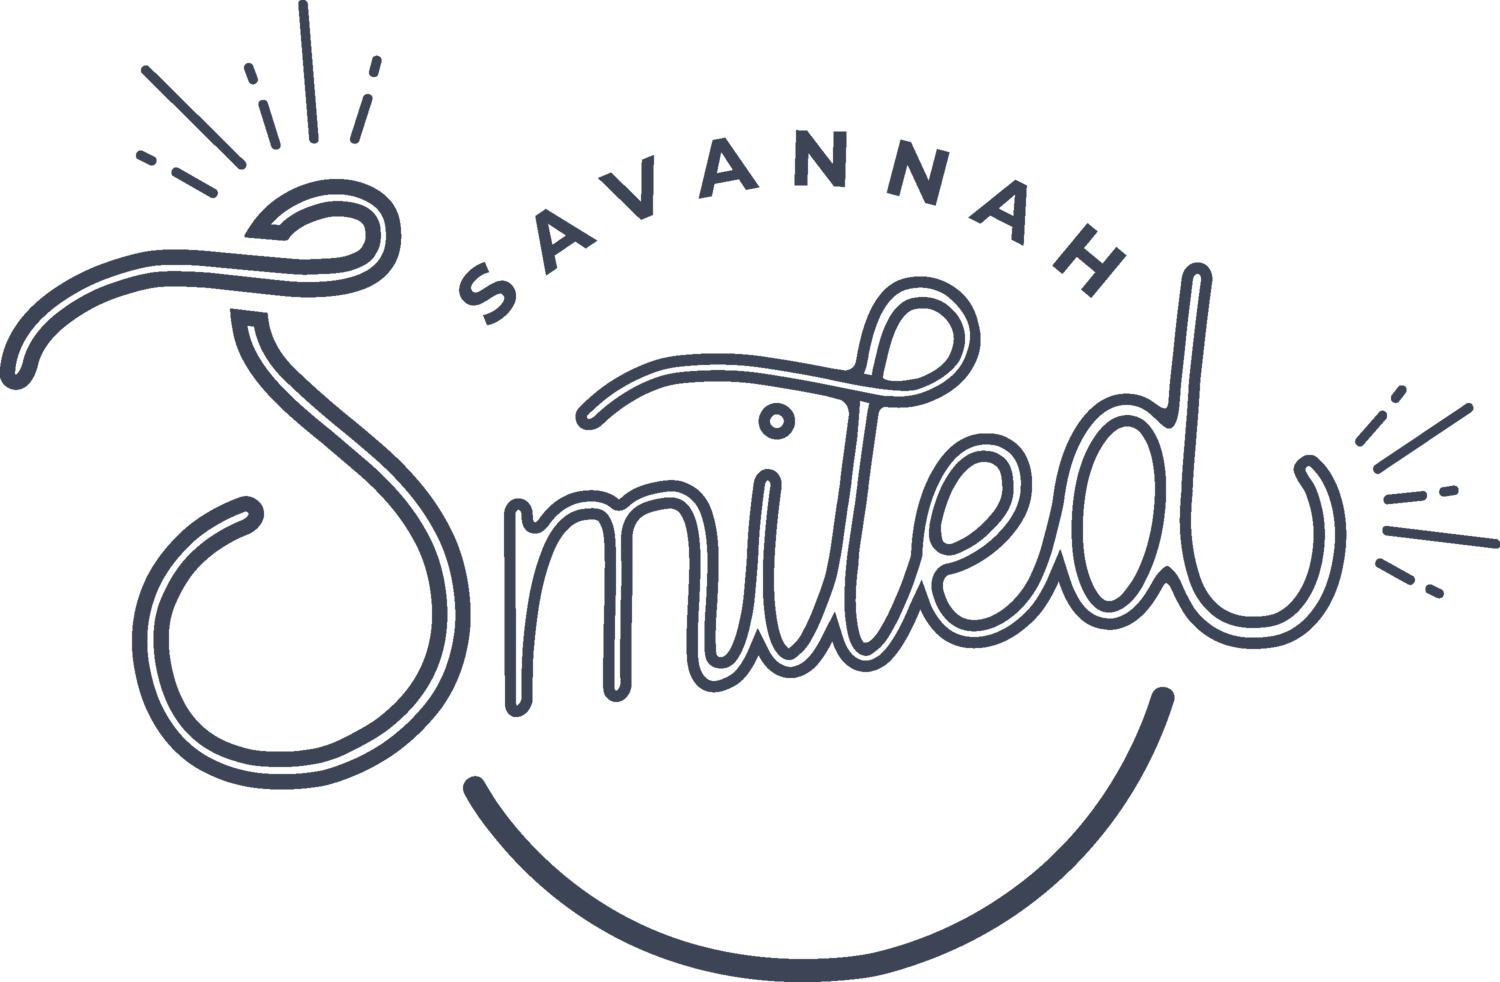 Savannah Smiled